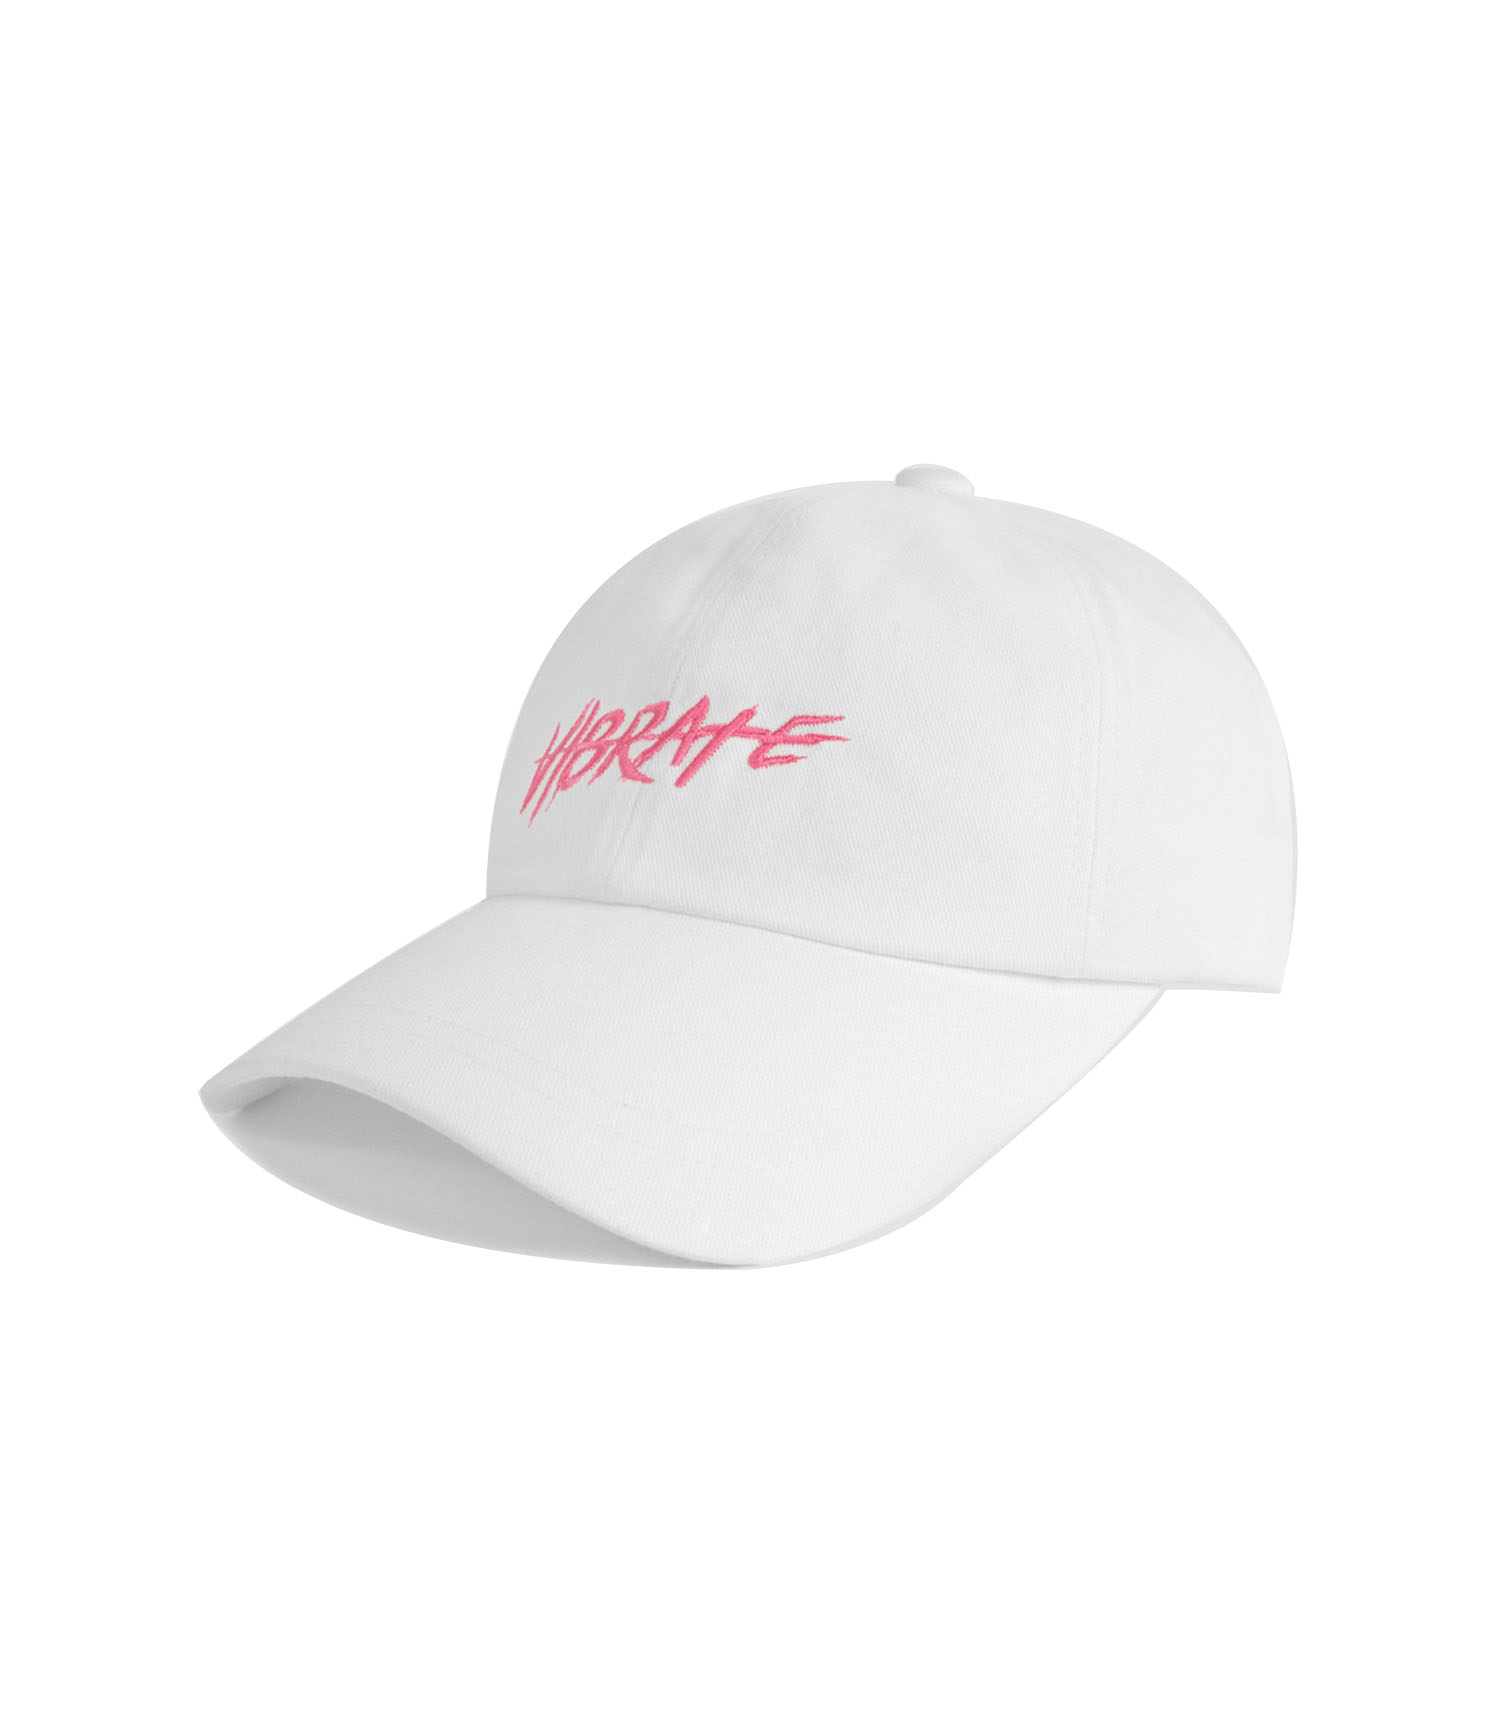 VIBRATE - BRUSH LETTERING BALL CAP (white)